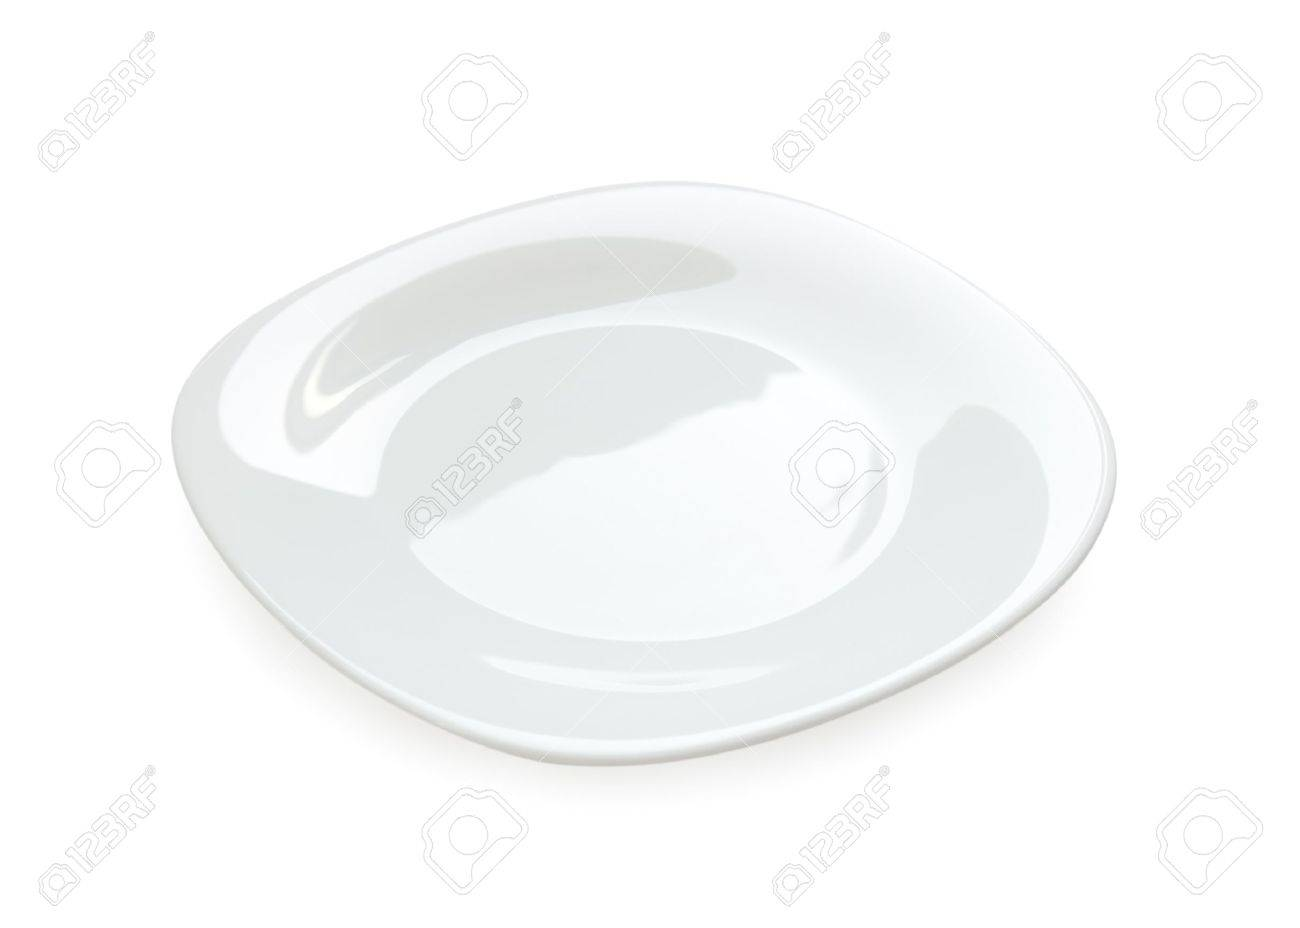 Empty rounded white plate isolated from background Stock Photo - 7268887